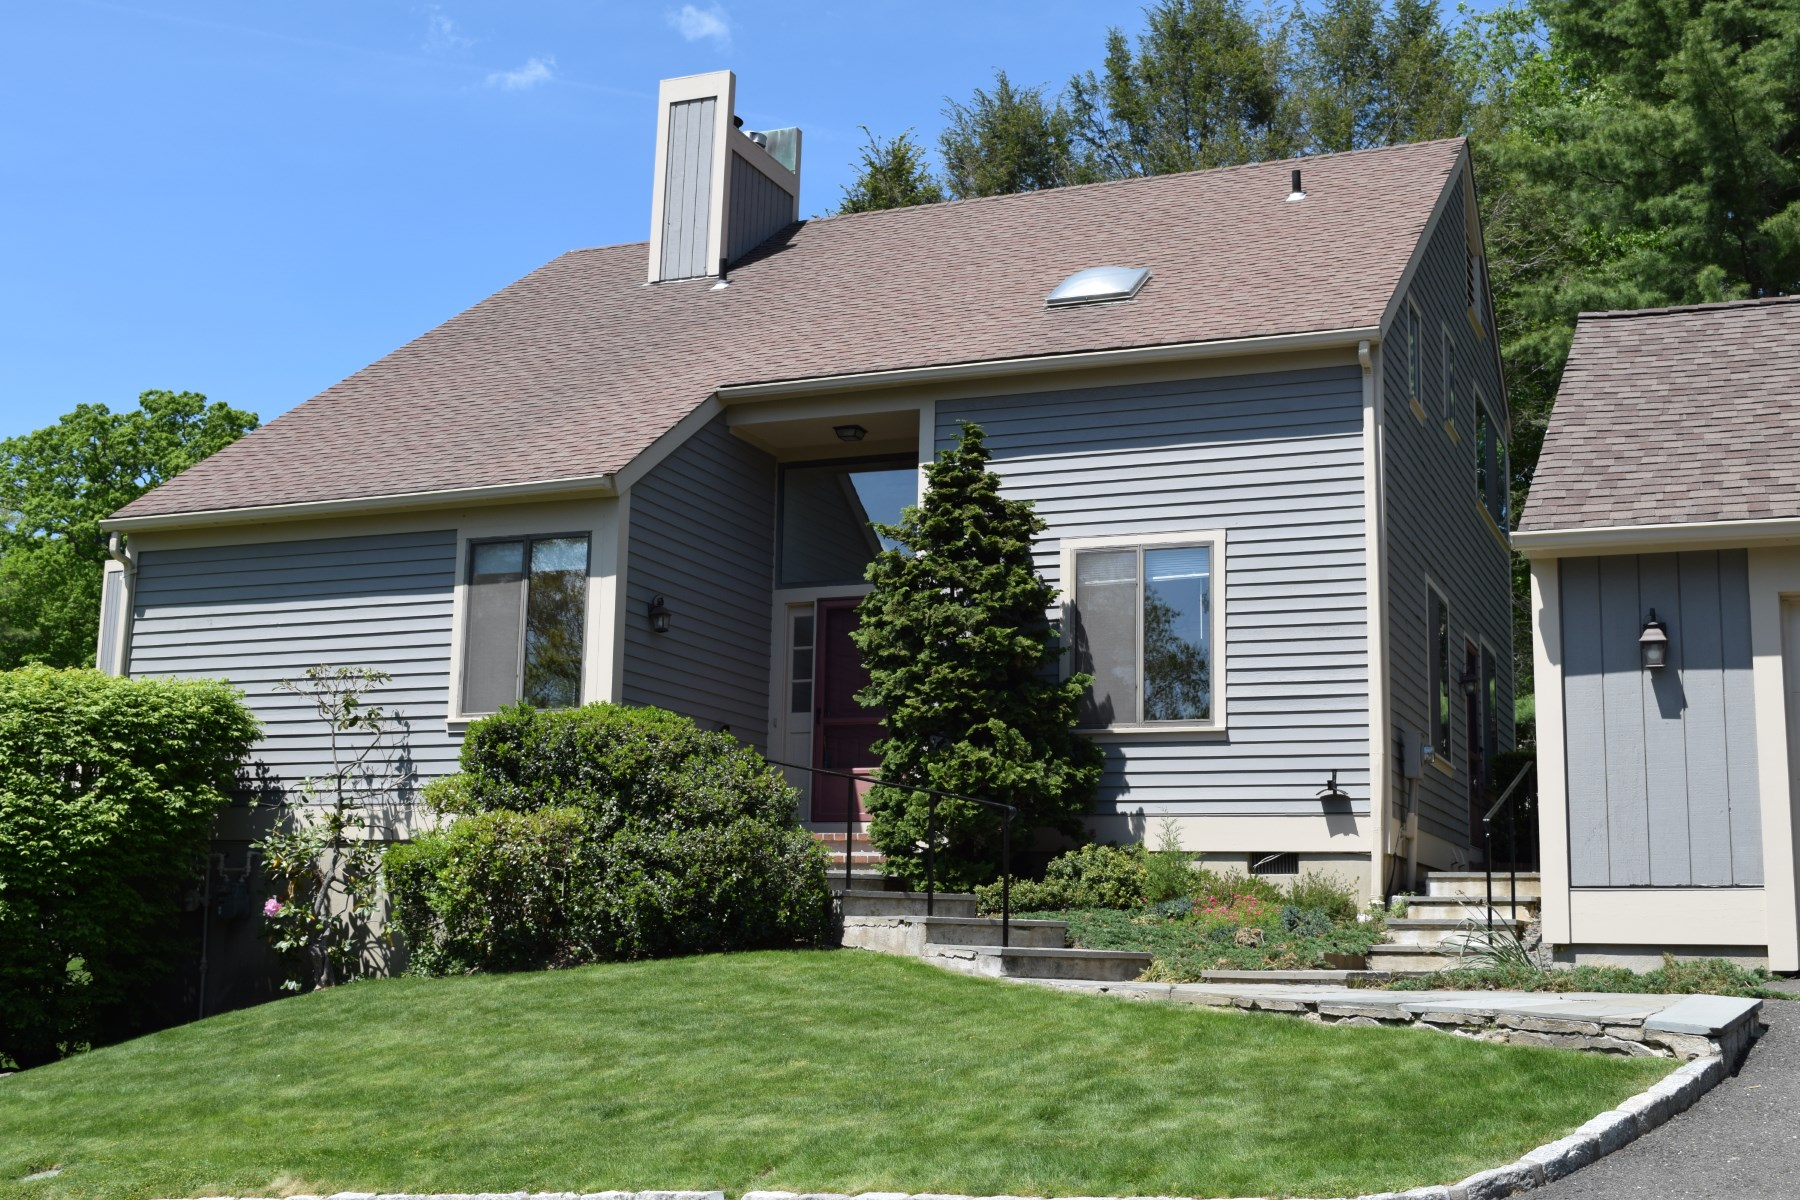 Condominium for Sale at 419 West Lyon Farm 419 West Lyon Farm Drive South Of Parkway, Greenwich, Connecticut, 06831 United States